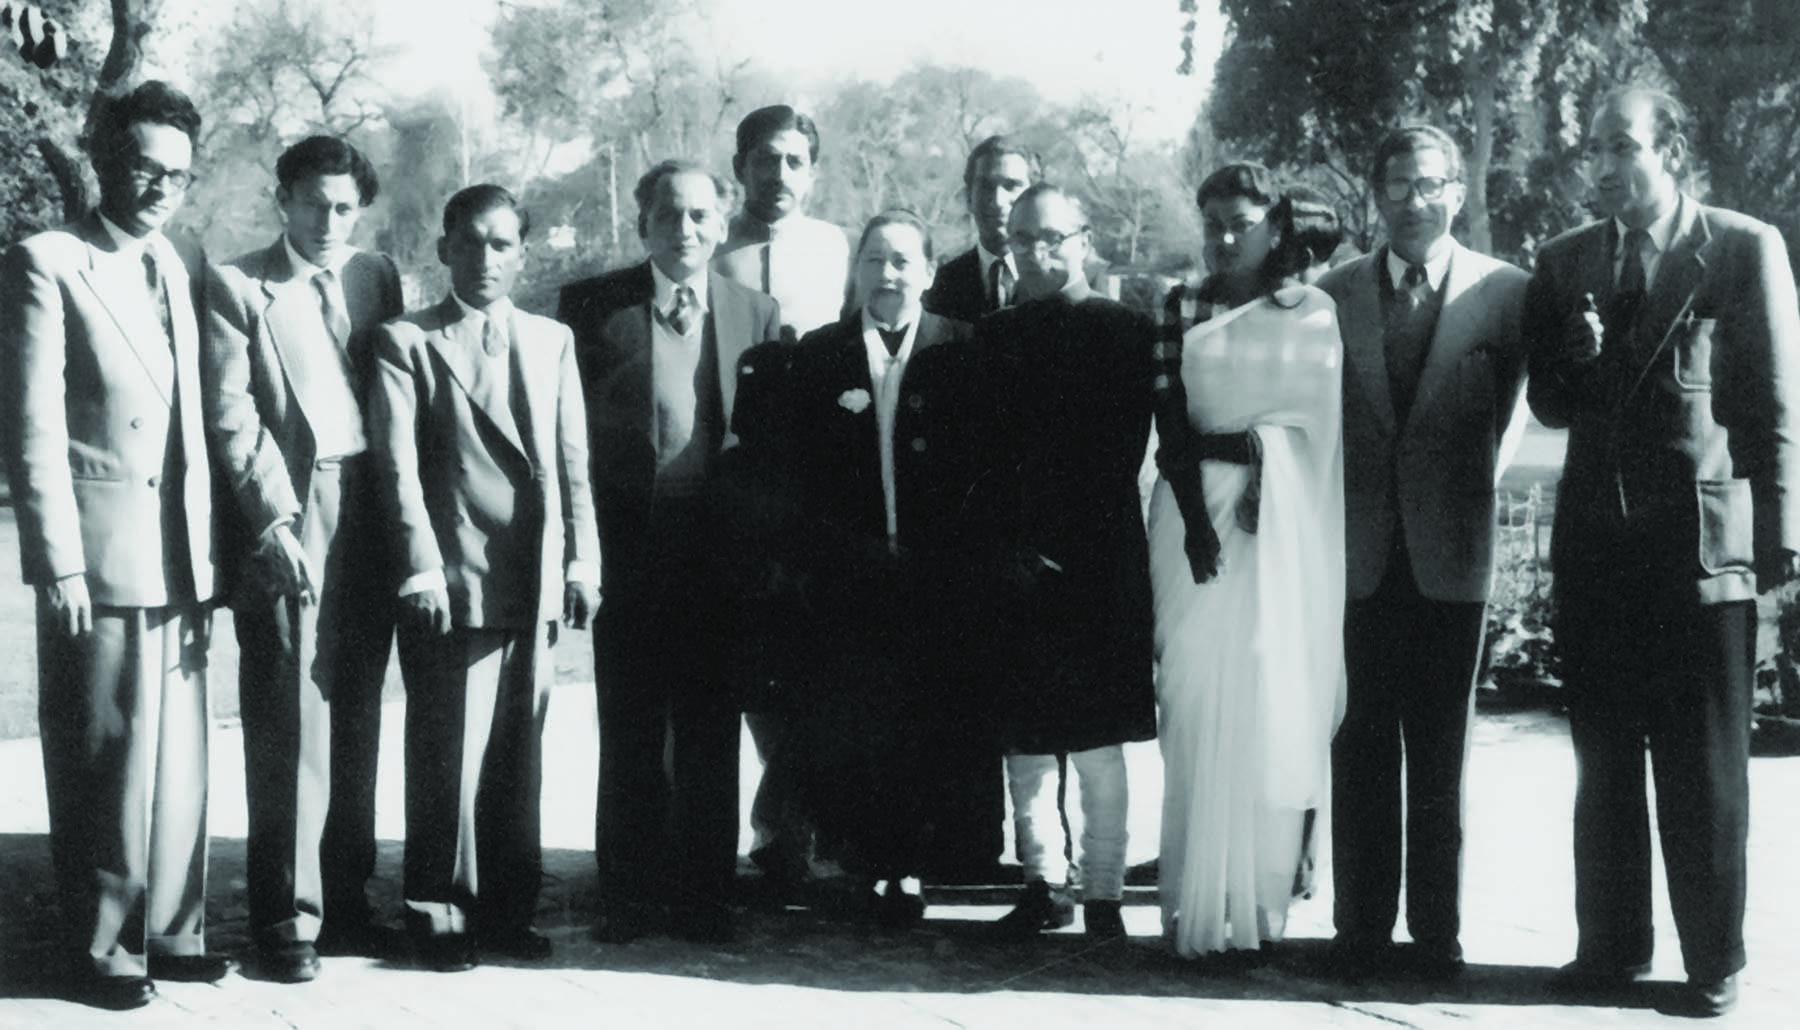 AHMAD Ali Khan (extreme left) at a reception hosted by Mian Iftikharuddin, the publisher of Pakistan Times, Imroz and Lail-O-Nahar, in honour of the visiting Chinese political dignitary, Madame Soong Ching Lee (centre), at his house in Lahore in the early 1950s. Standing next to Mian Sahib (from left) are Hajra Masroor, Khan Sahib's wife, Ahmed Nadeem Qasmi and Hameed Akhtar. Faiz Ahmad Faiz and Mazhar Ali Khan are standing next to the Chinese guest of honour, while Zaheer Babar is seen next to Khan Sahib. | Photo: Ahmad Ali Khan Family Archives